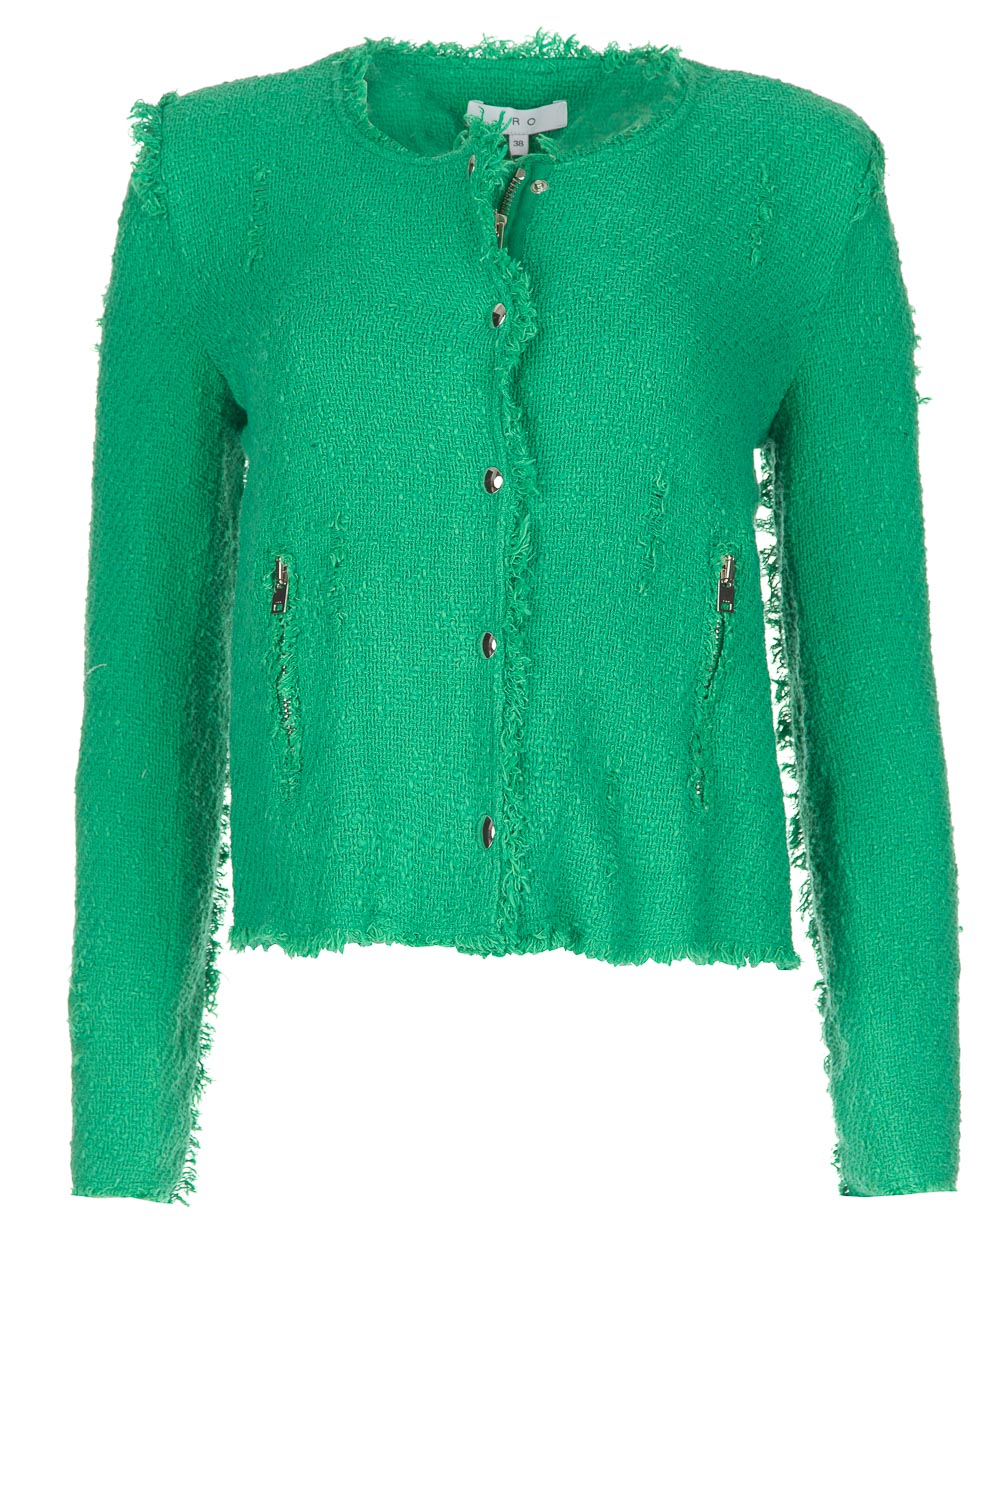 jacket green Soho IRO Little Bouclé Agnette g7waqaf